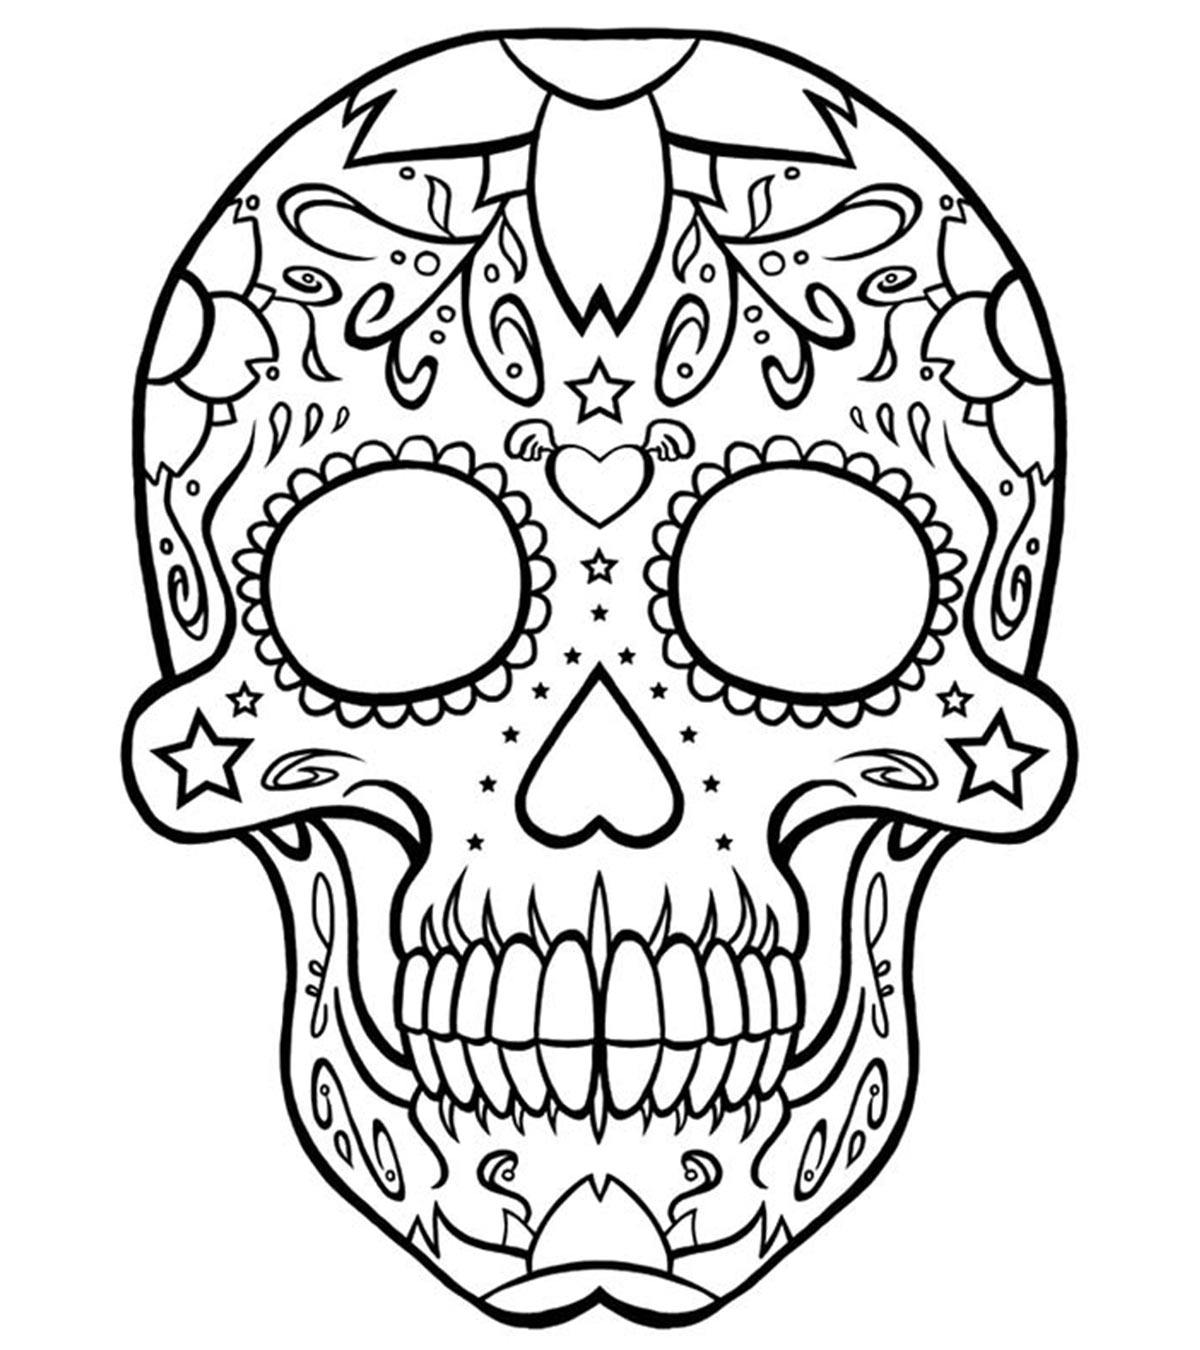 - Top 15 Skull Coloring Pages For Your Little One